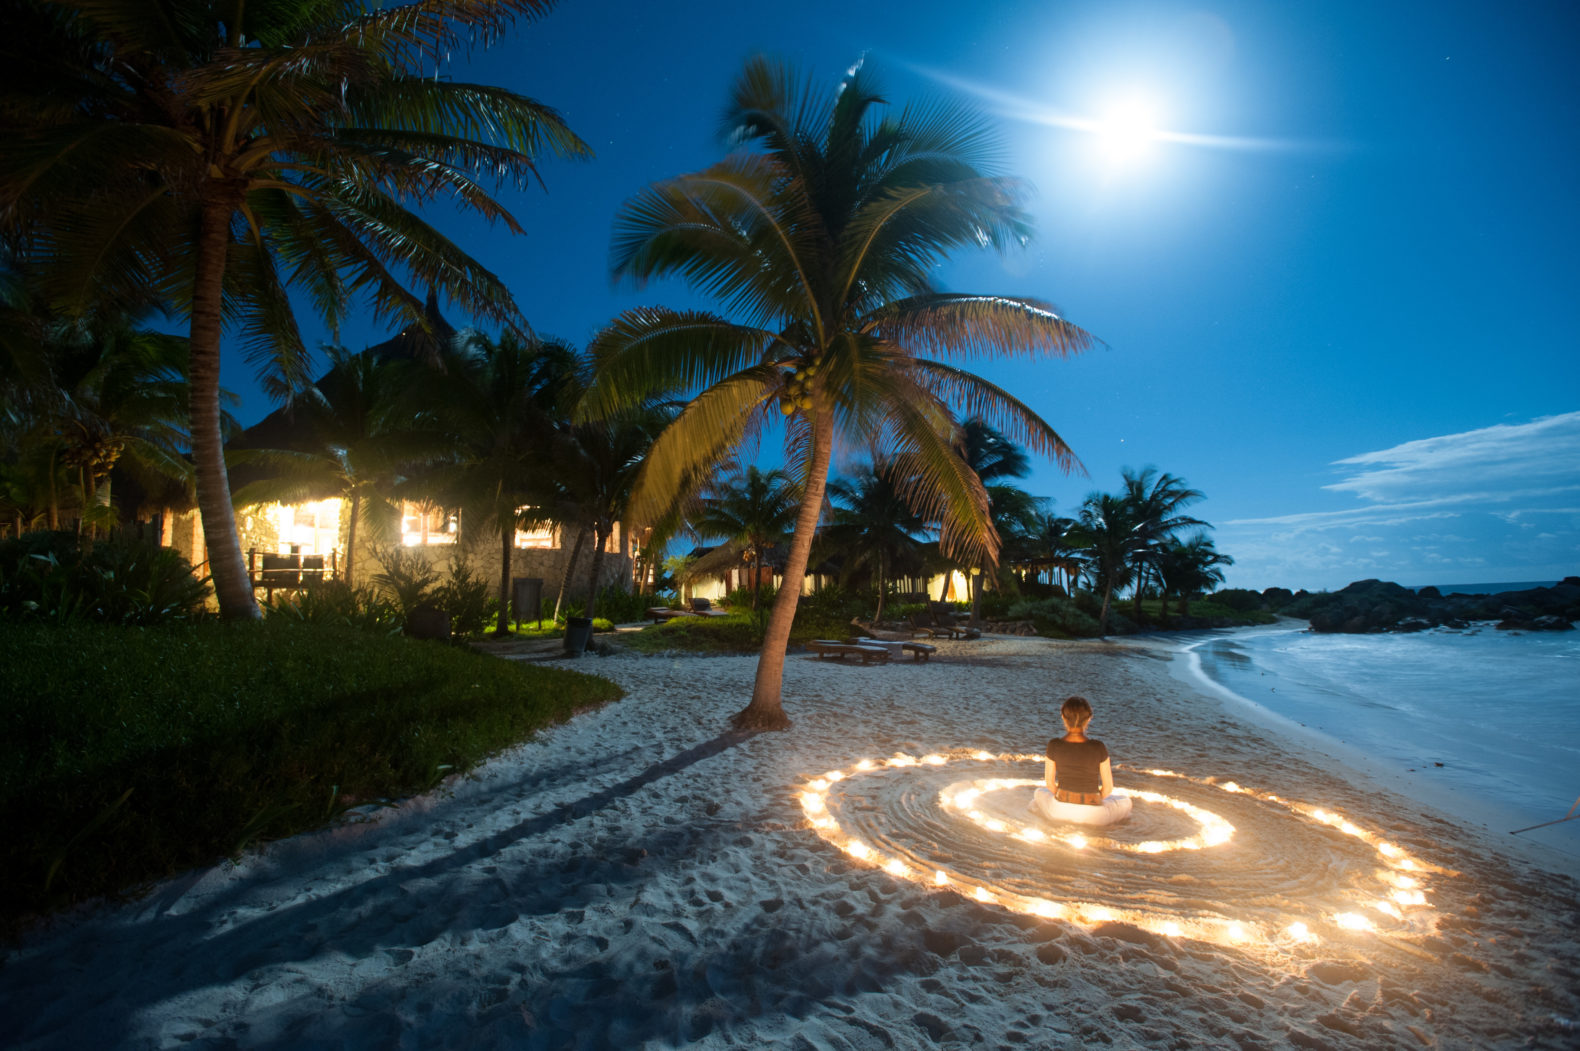 beach-meditation-palmtrees-white-sand-moonshine-maya-tulum-mexico